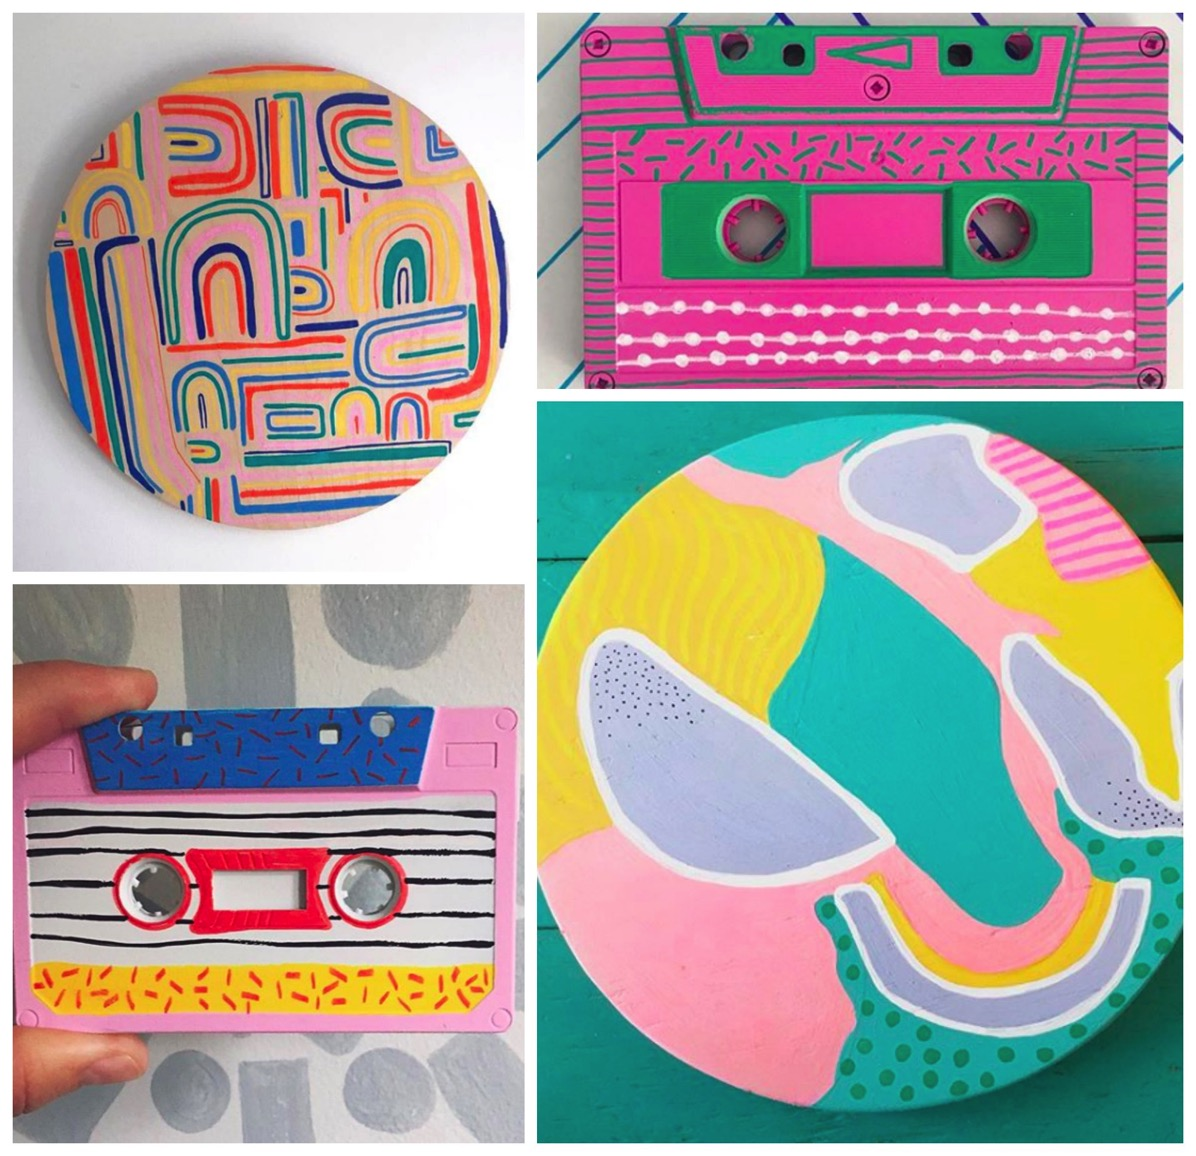 Wooden flamingo retro cassette tapes colorful